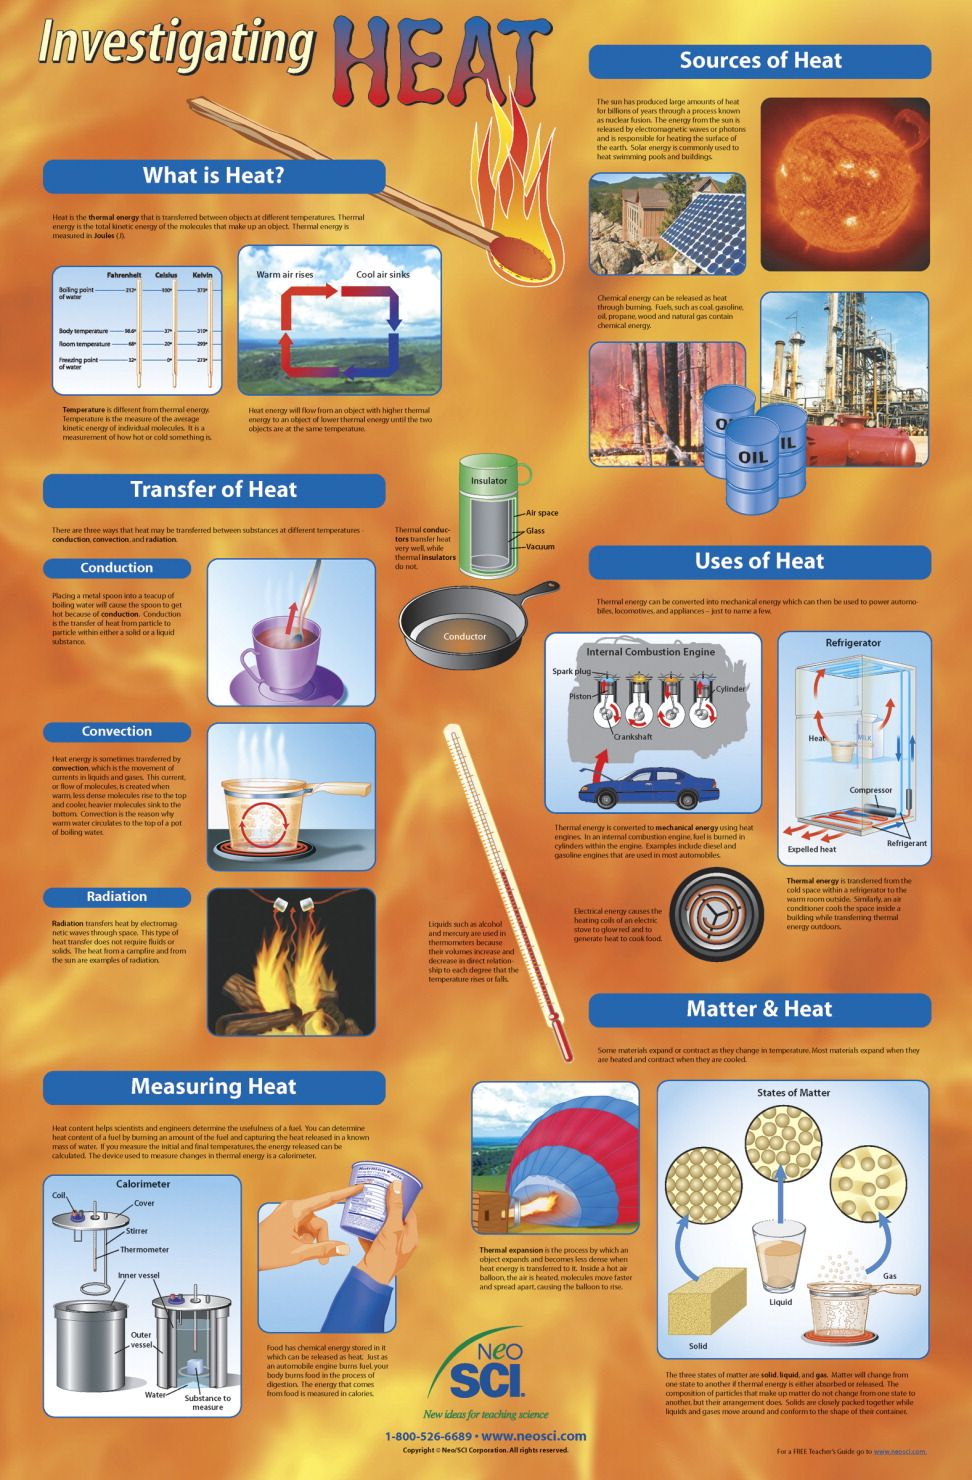 Poster What Is Heat Transfer Of Heat Measuring Heat Sources Of Heat Uses Of Heat Matter And Hea Heat Transfer Science What Is Heat Science Fair